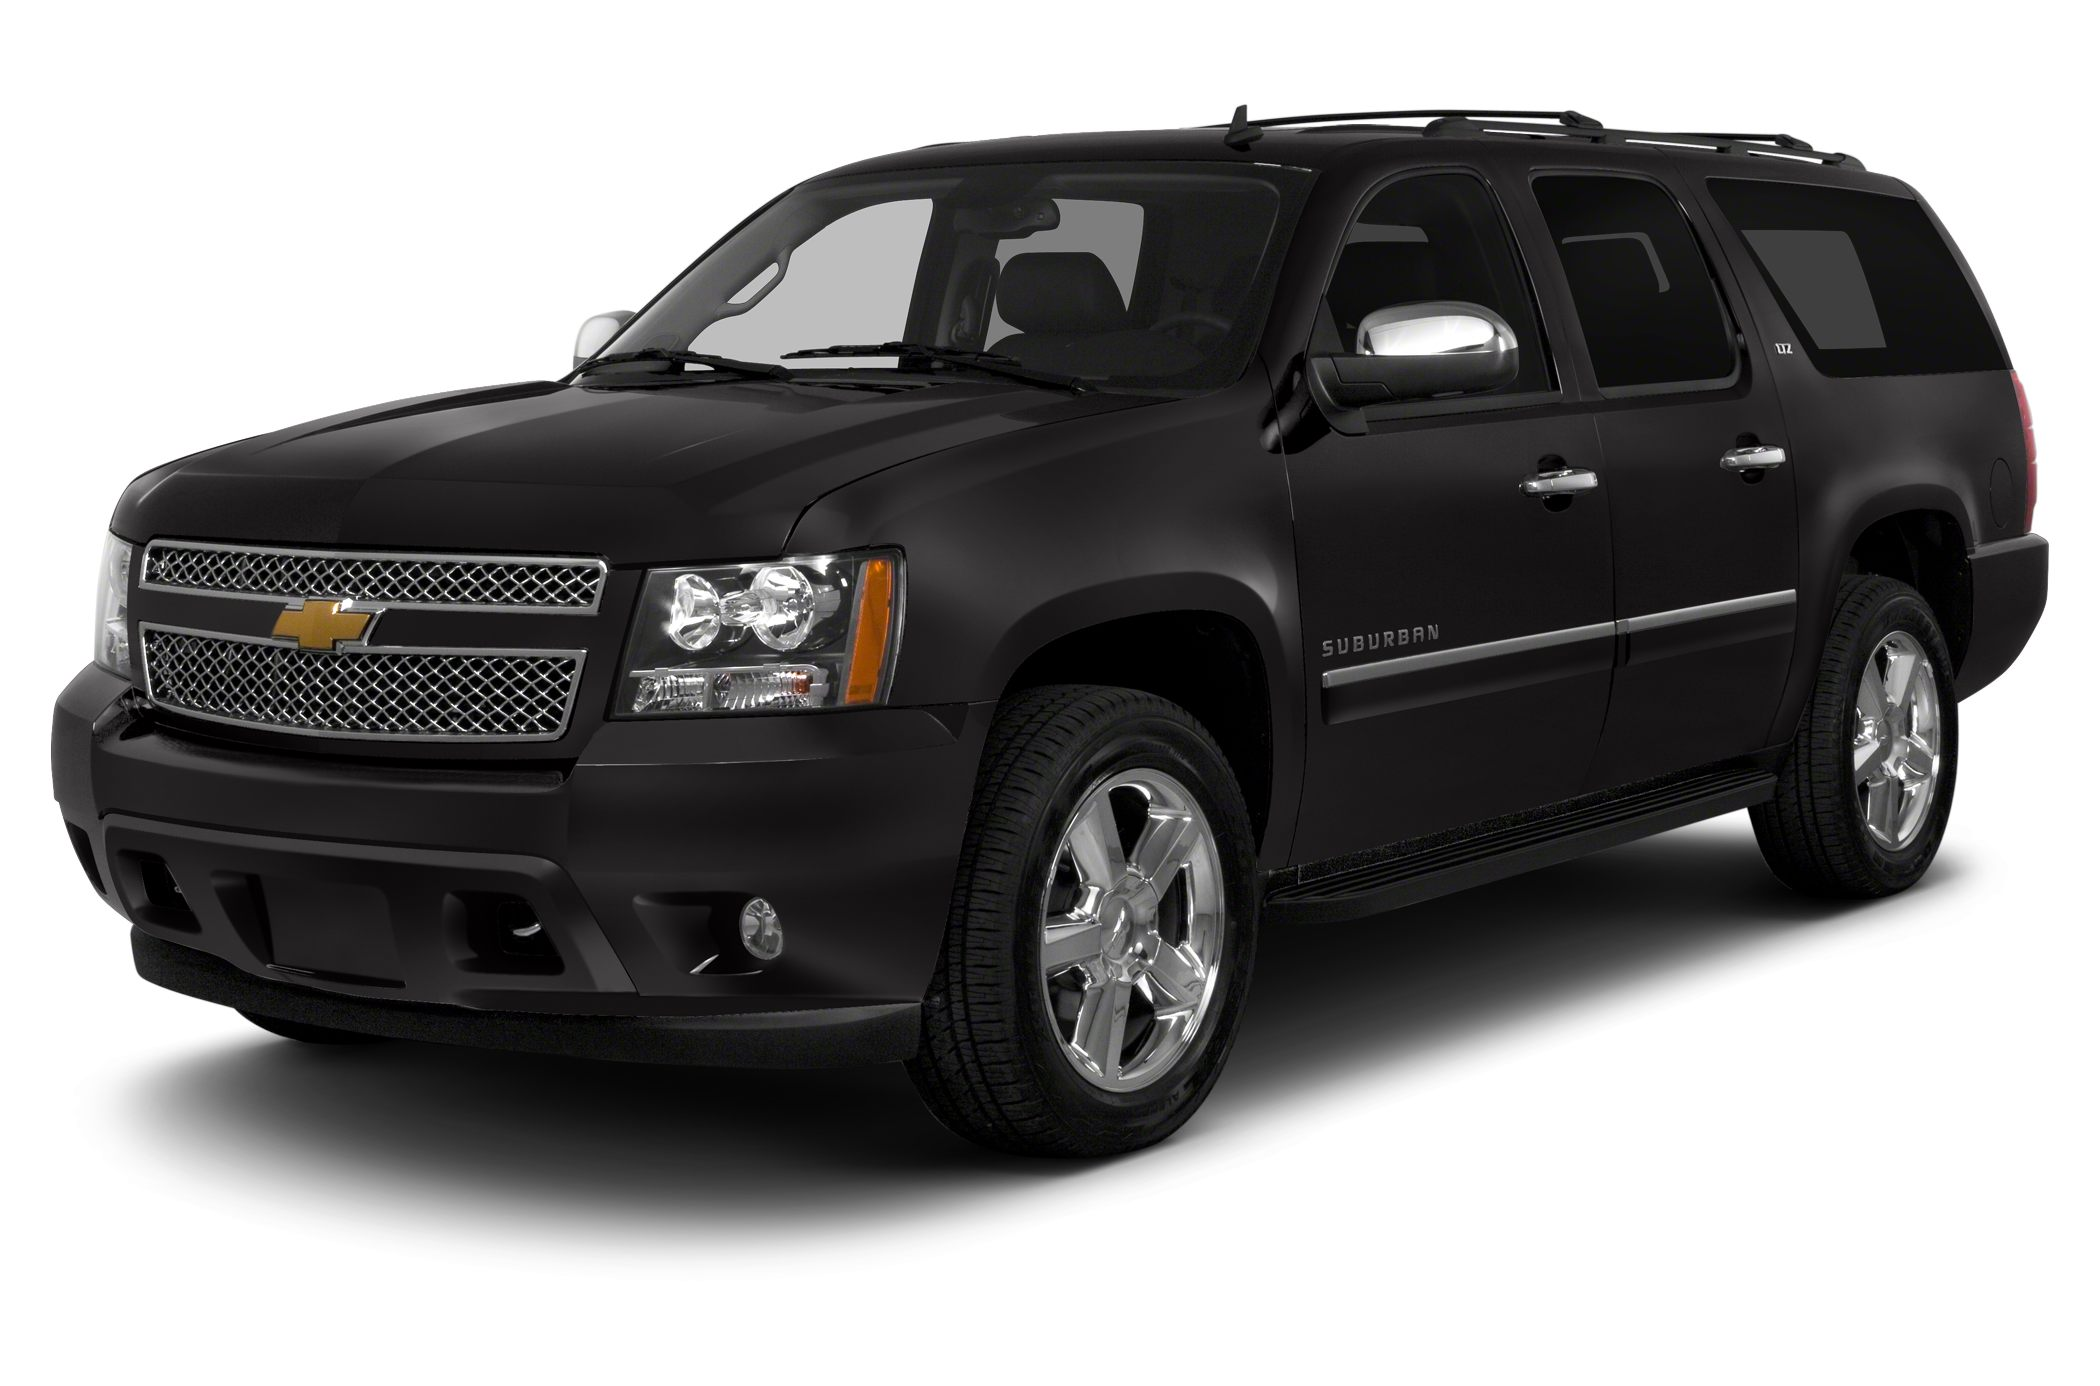 2014 Chevrolet Suburban 1500 LT SUV for sale in Bolingbrook for $35,972 with 39,086 miles.